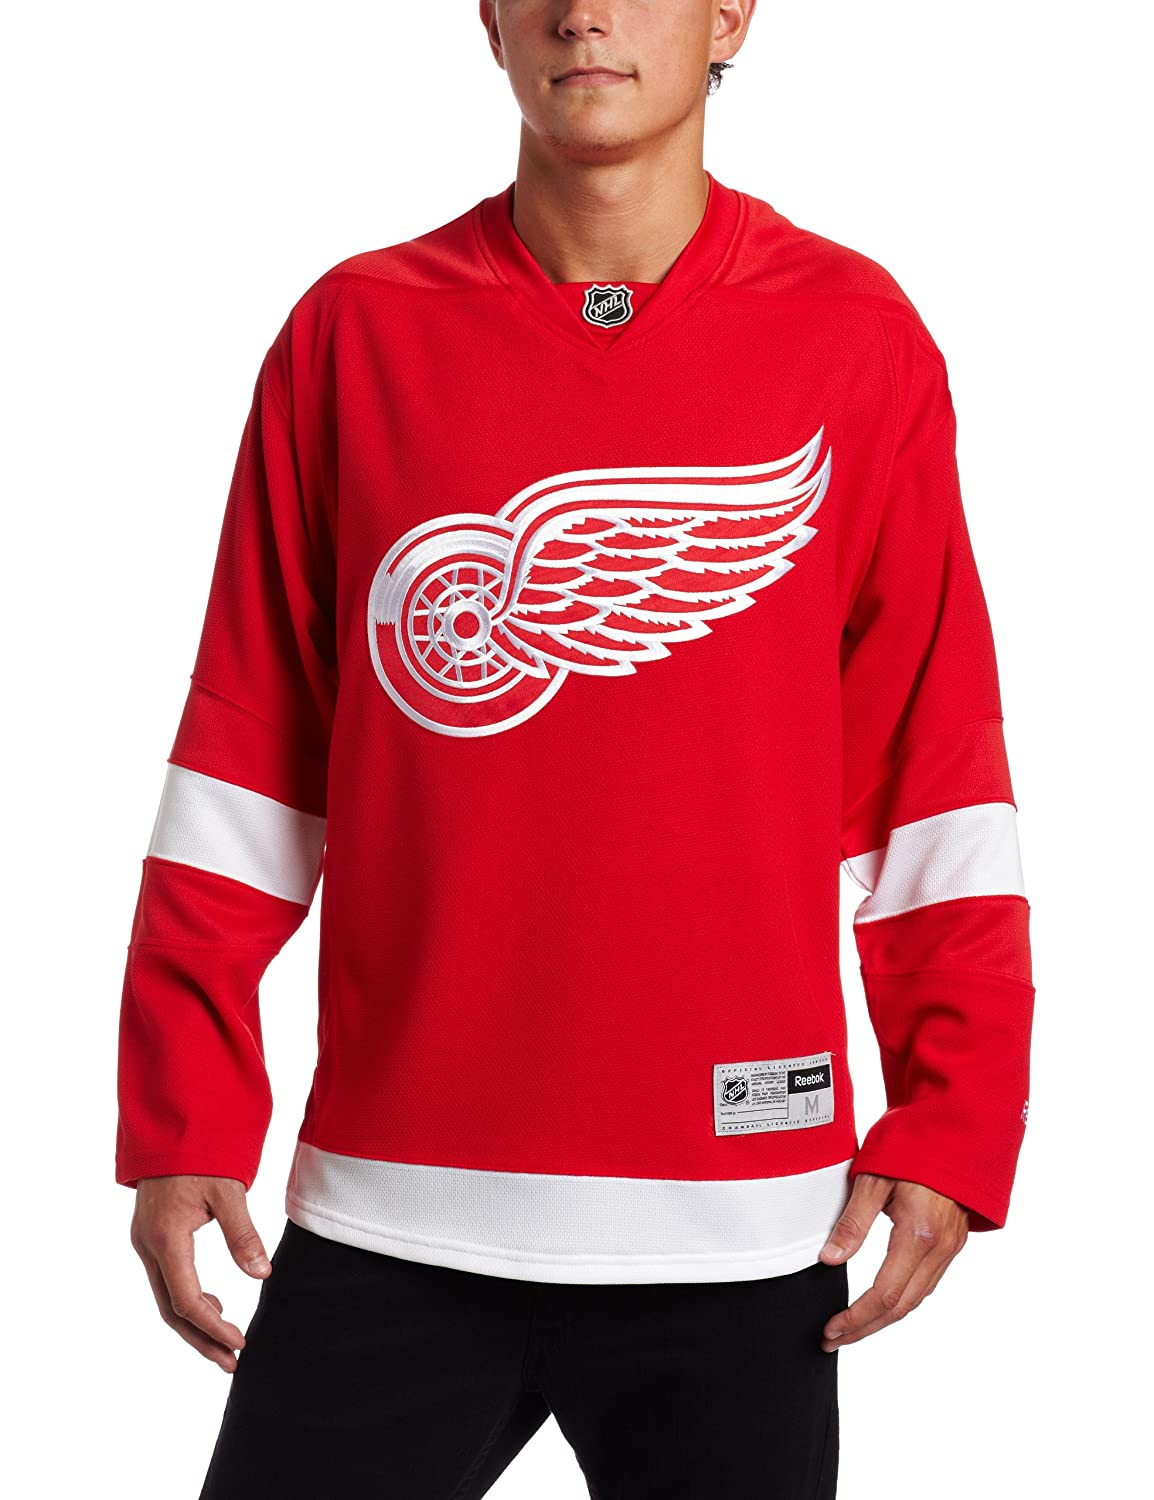 online retailer 08f2d 5582a NHL Detroit Red Wings Premier Jersey, Red